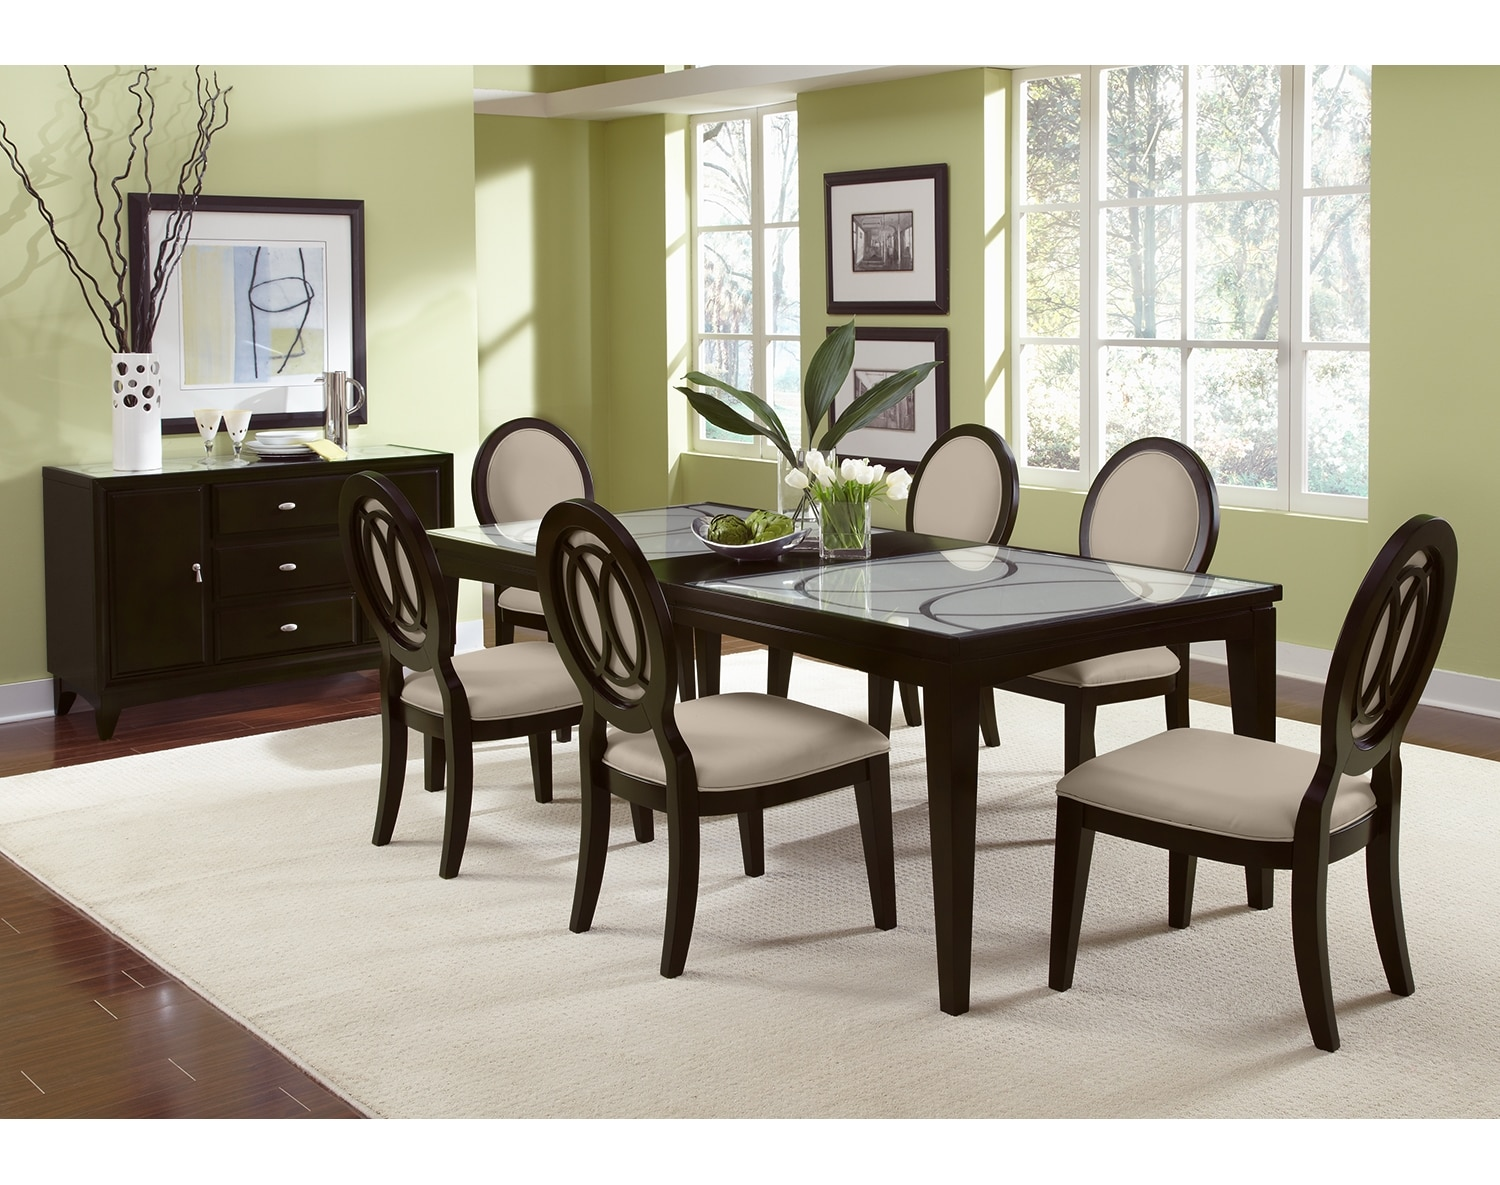 the cosmo collection merlot 35999 cosmo dining table merlot the cosmo collection - Dining Room Sets Value City Furniture